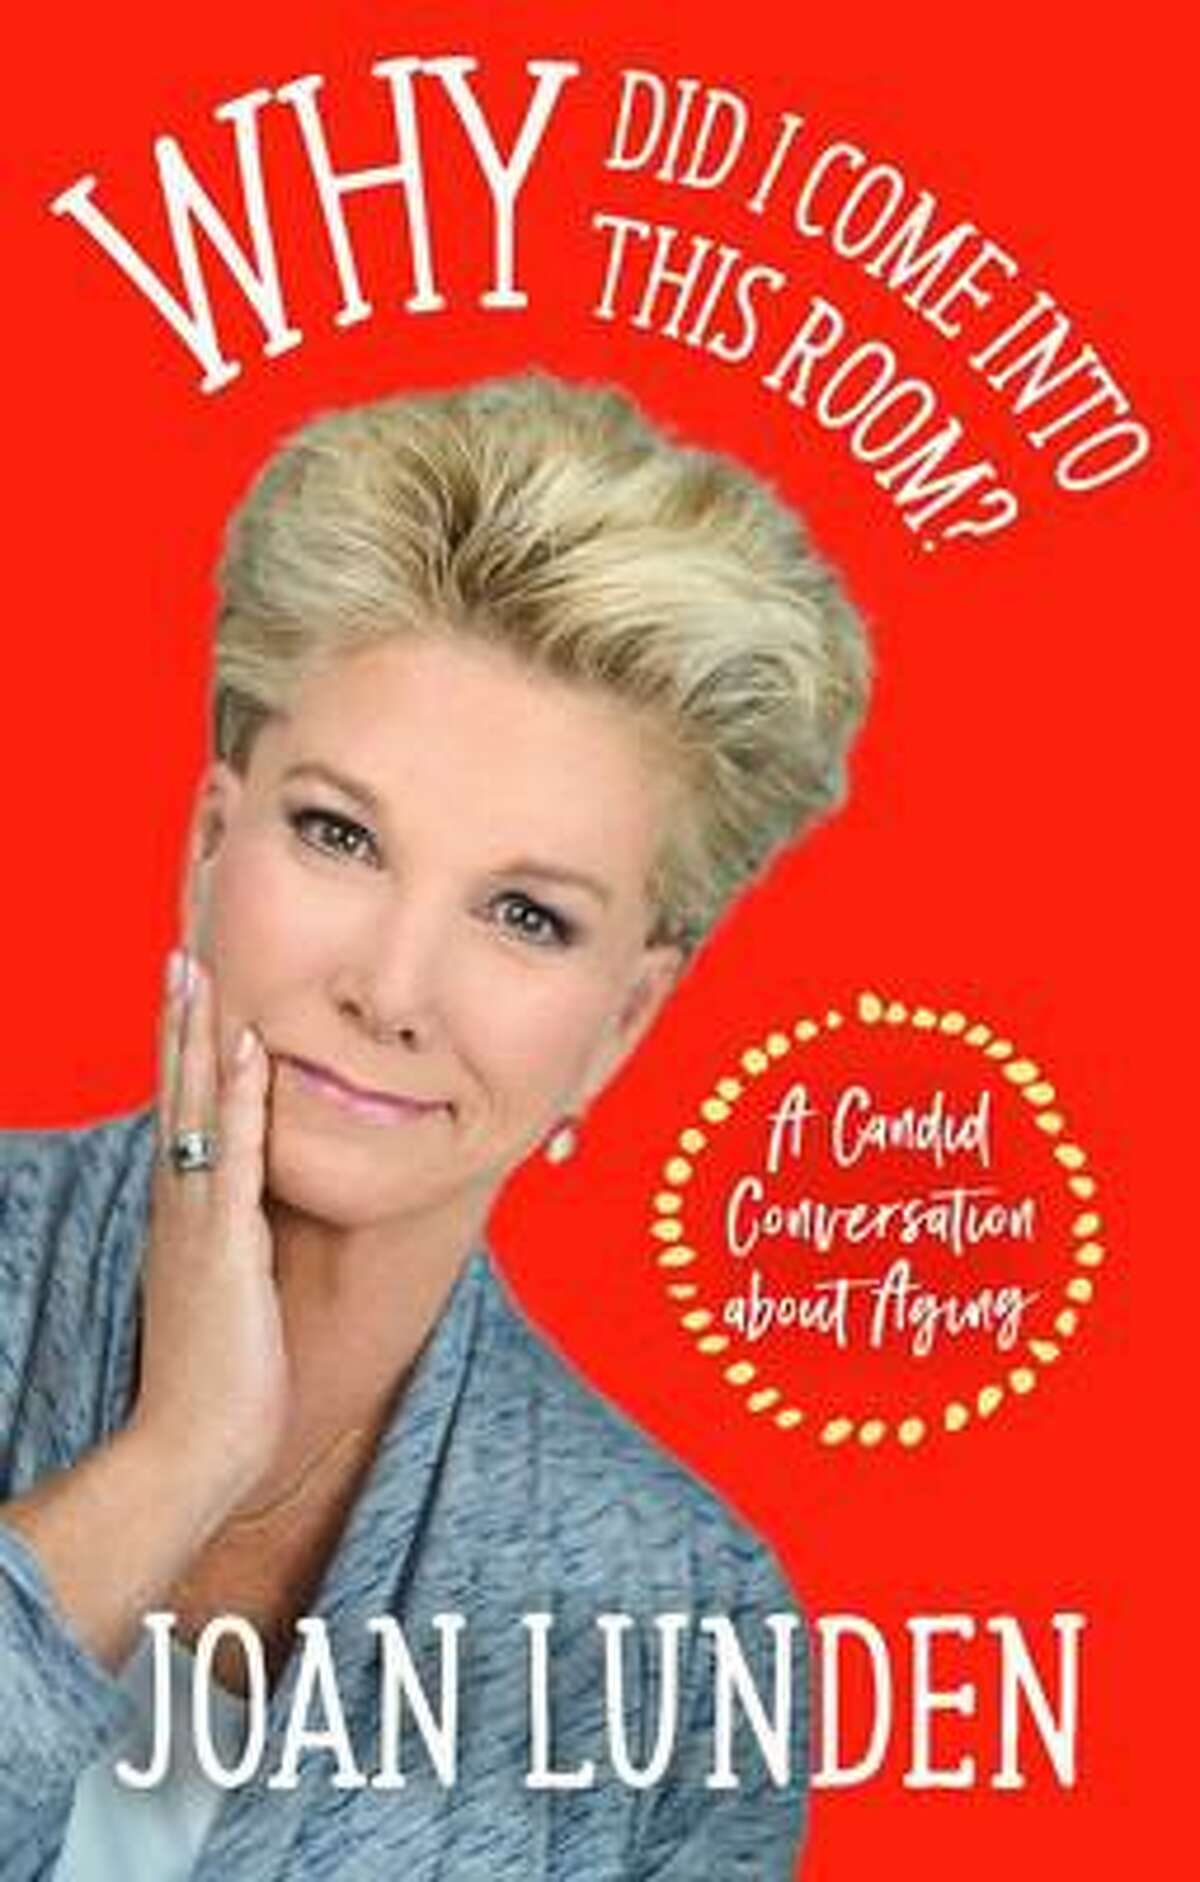 """Joan Lunden's book """"Why Did I Come Into This Room? A Candid Conversation About Aging"""" was published in March."""